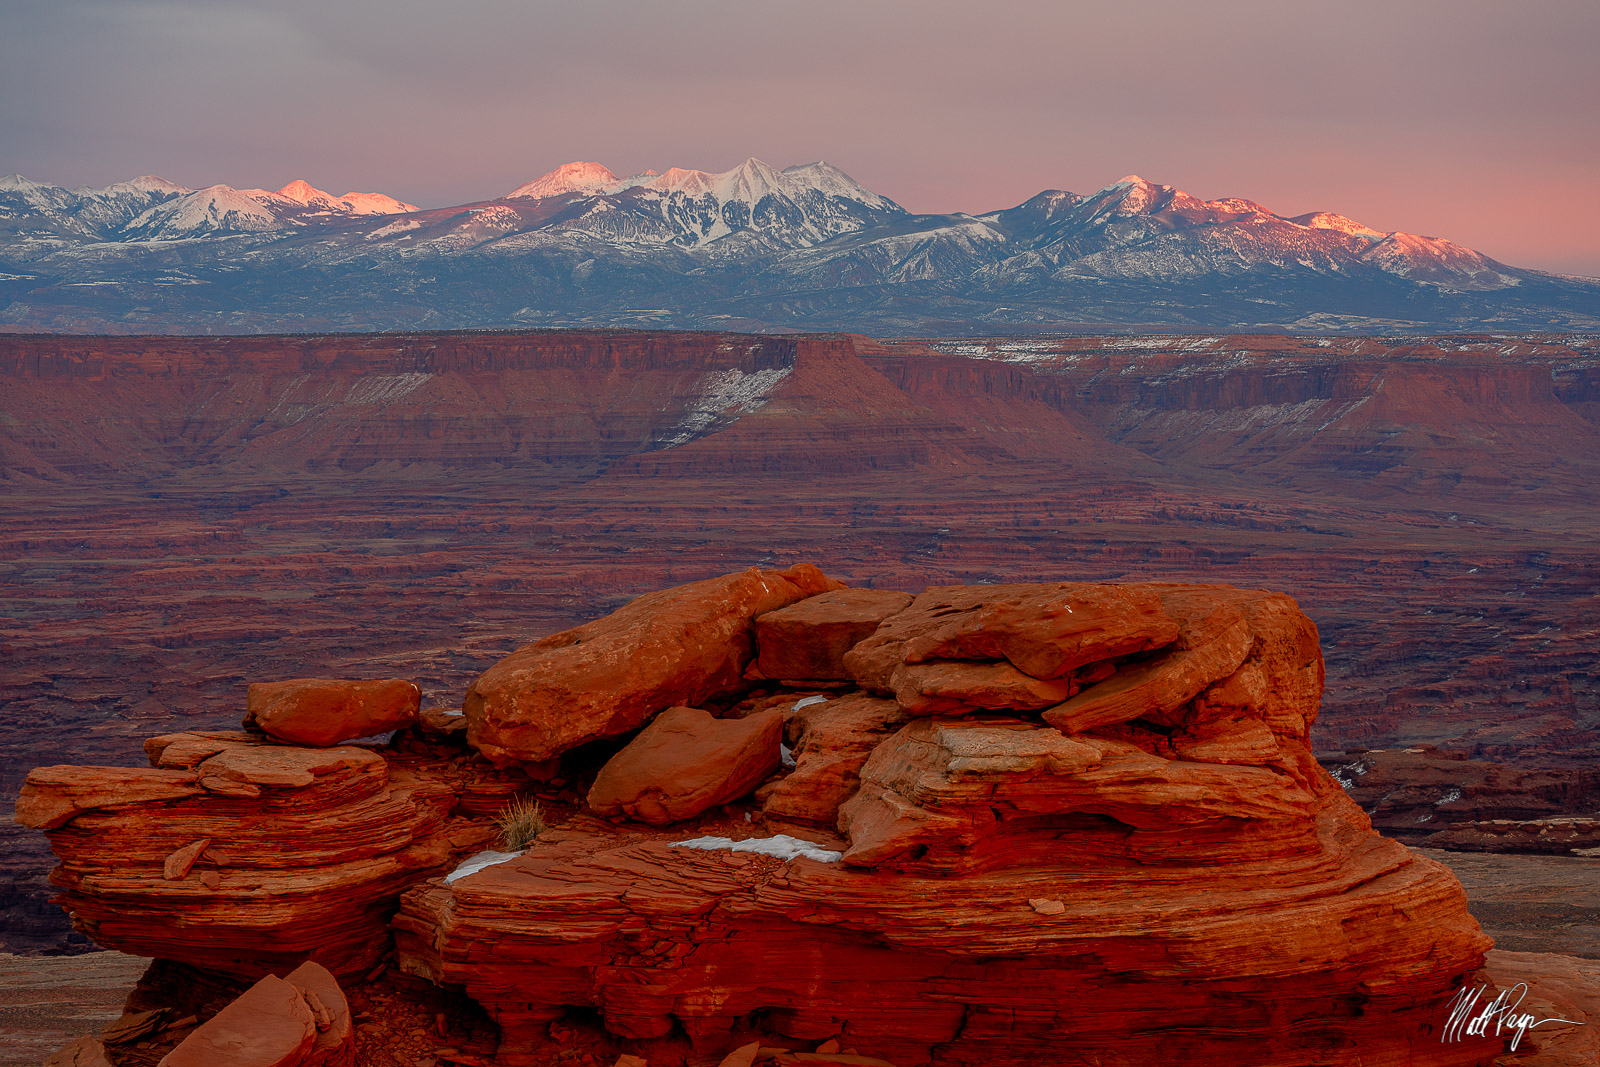 Canyonlands, Canyonlands National Park, Canyons, Grand Scenic, Island in the Sky, La Sal Mountains, Mountains, Snow, Sunset, Utah, Winter, desert, pastel, photo